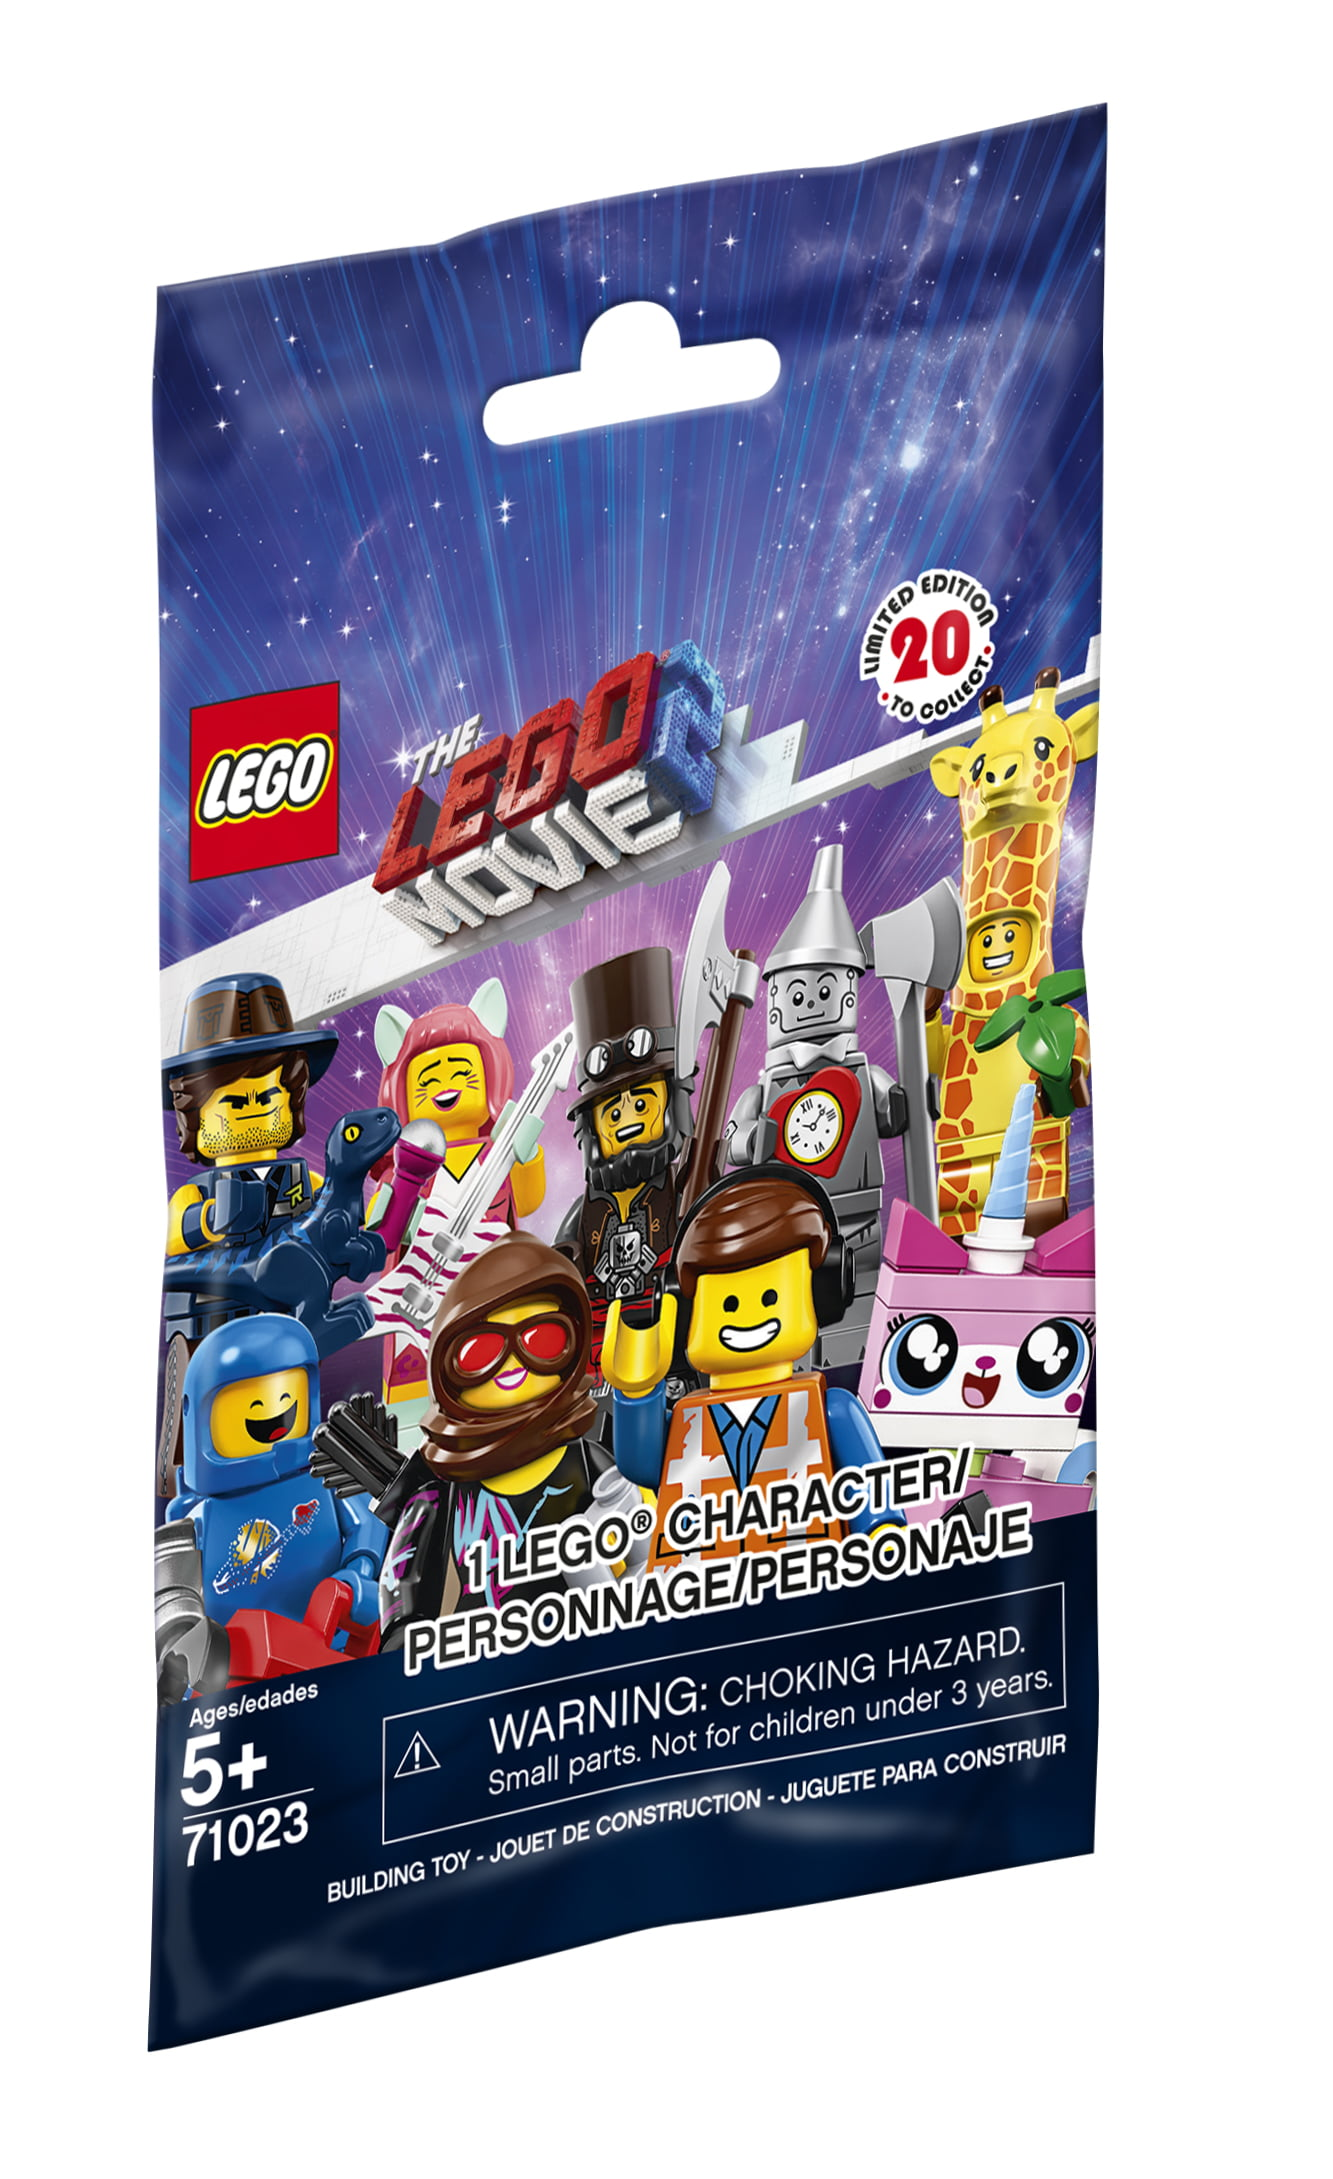 Lego Minifigures The Lego Movie 2 71023 1 Minifigure Walmart Com Walmart Com